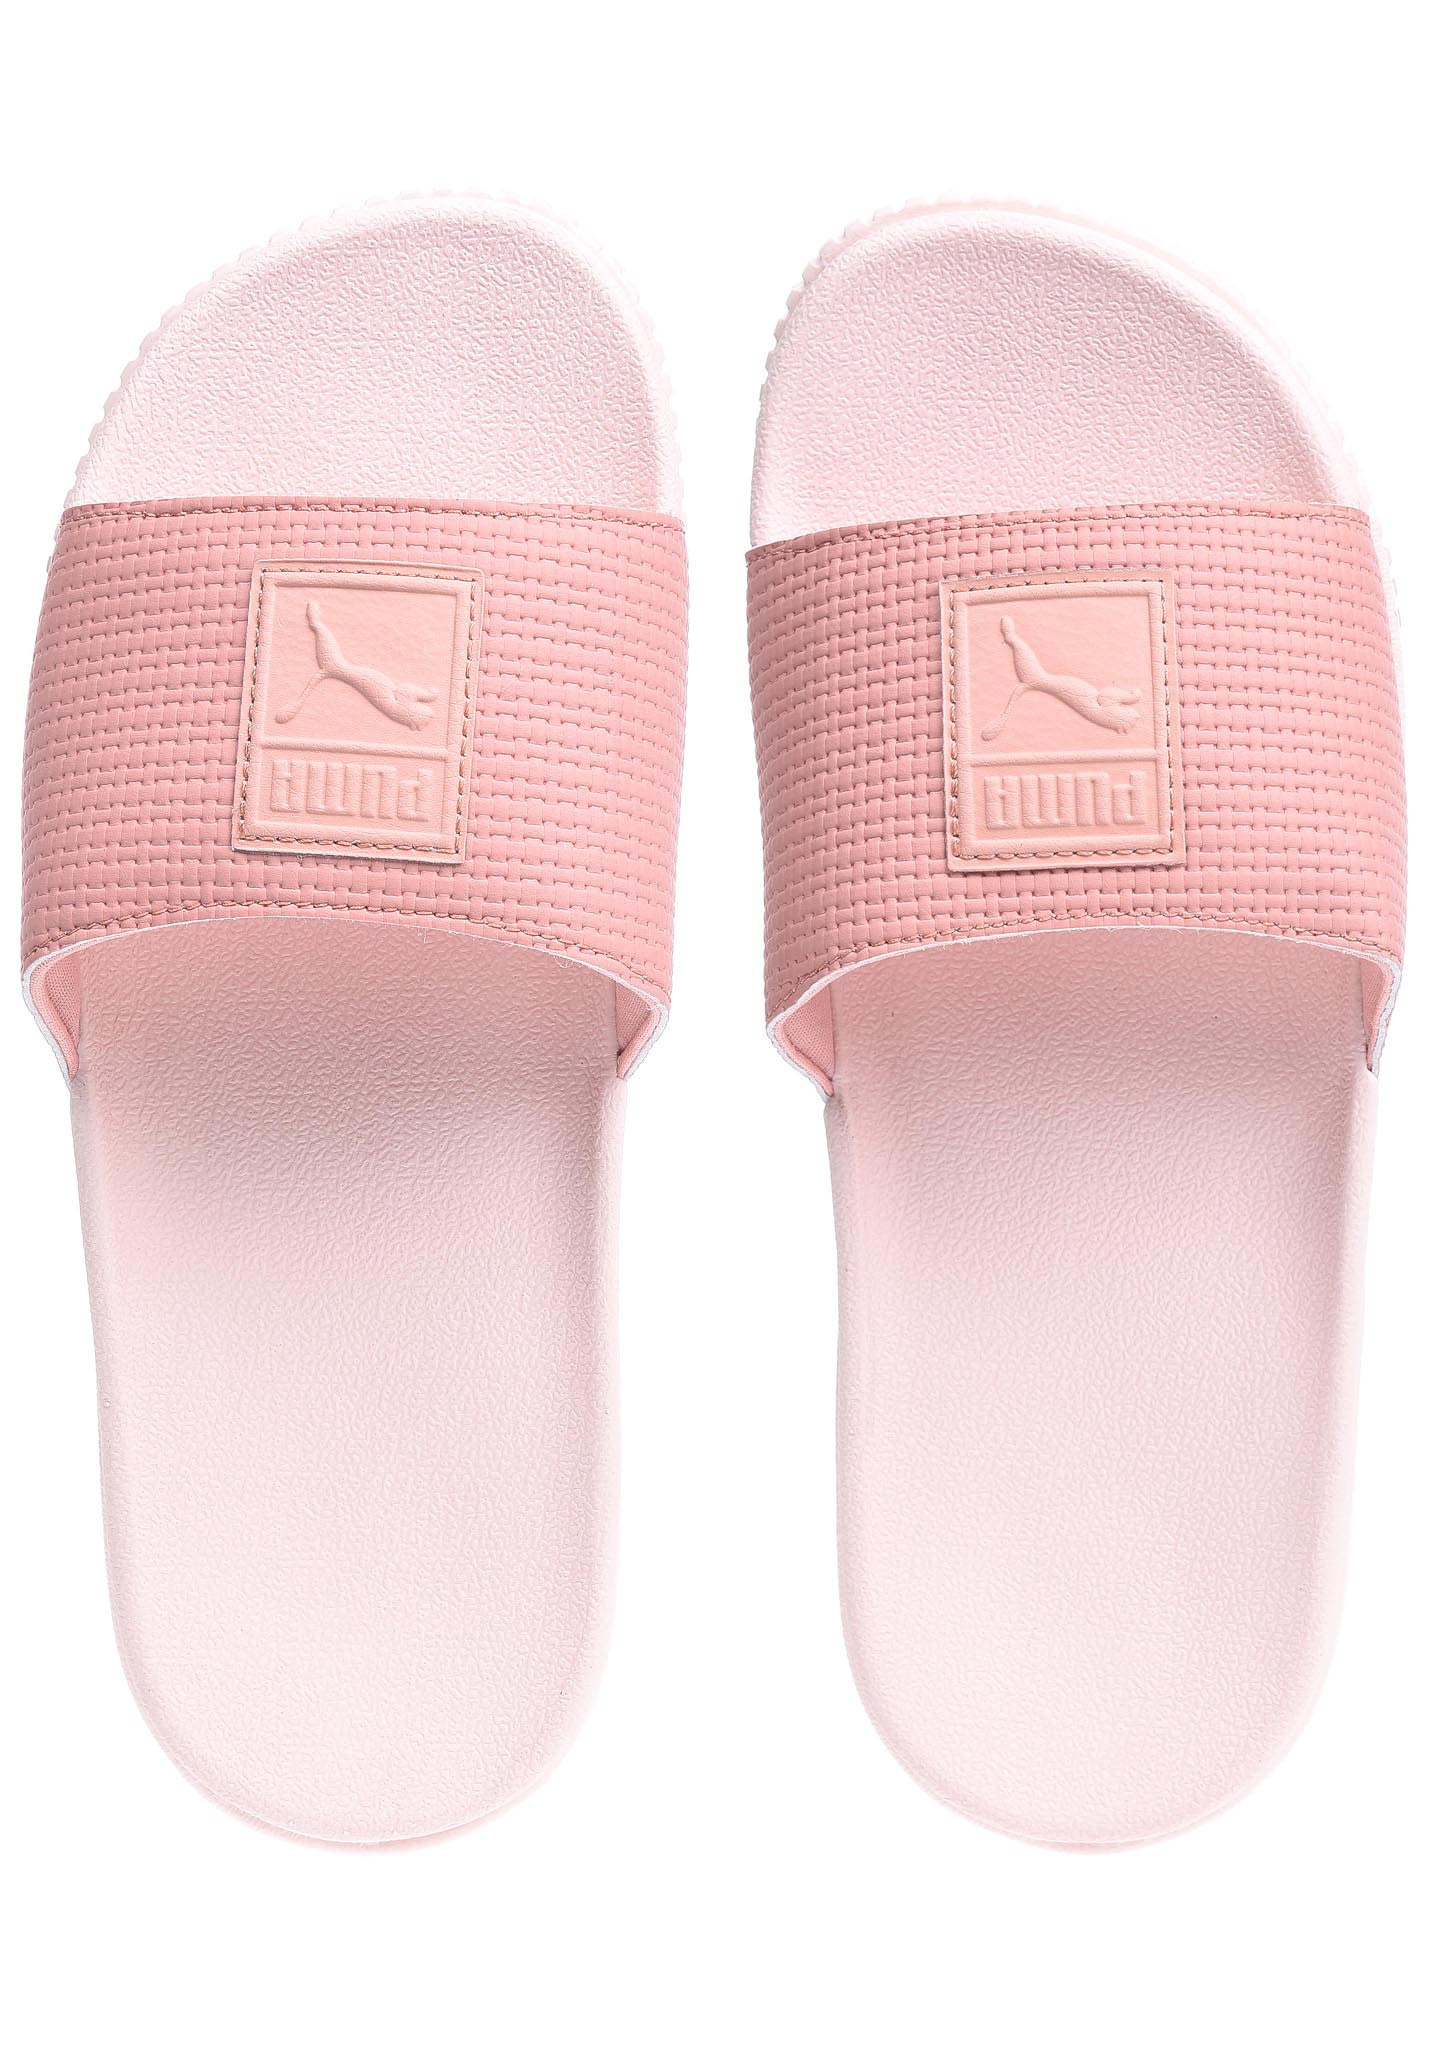 9dcfa63321b1 Puma Platform Slide EP - Sandals for Women - Pink - Planet Sports